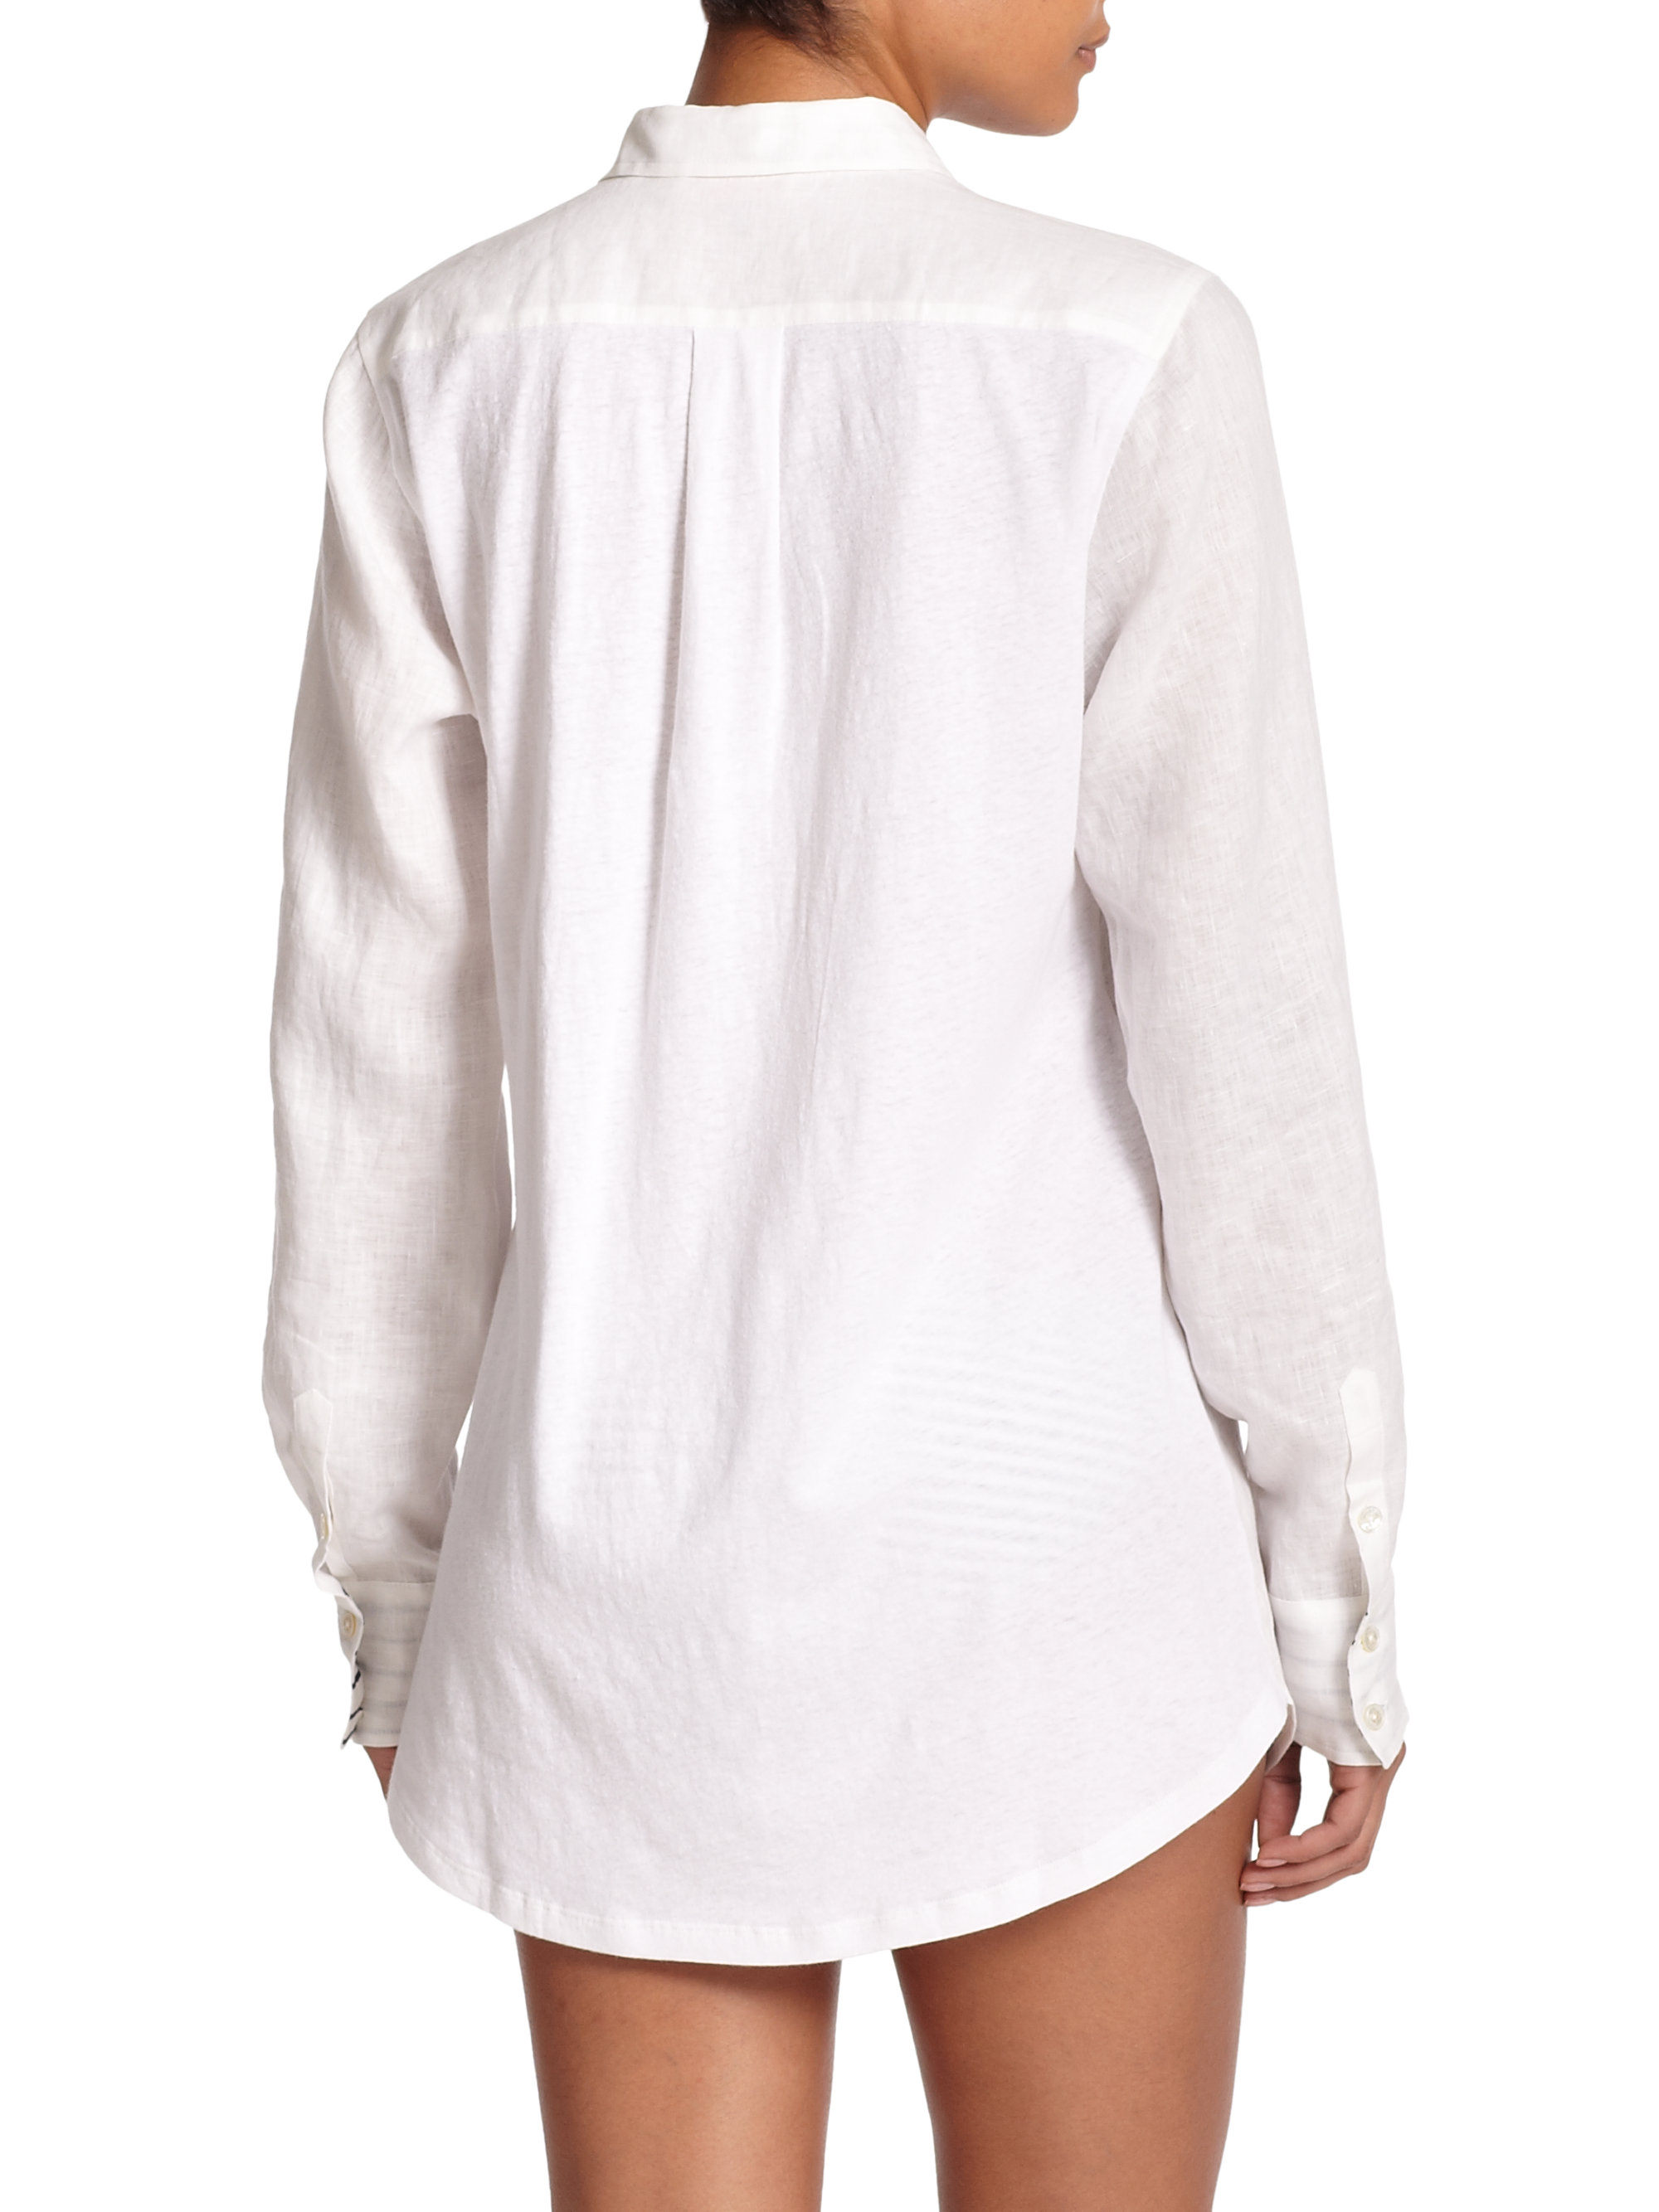 96debb4d4b Lyst - Tory Burch Linen   Cotton Shirt Cover-up in White